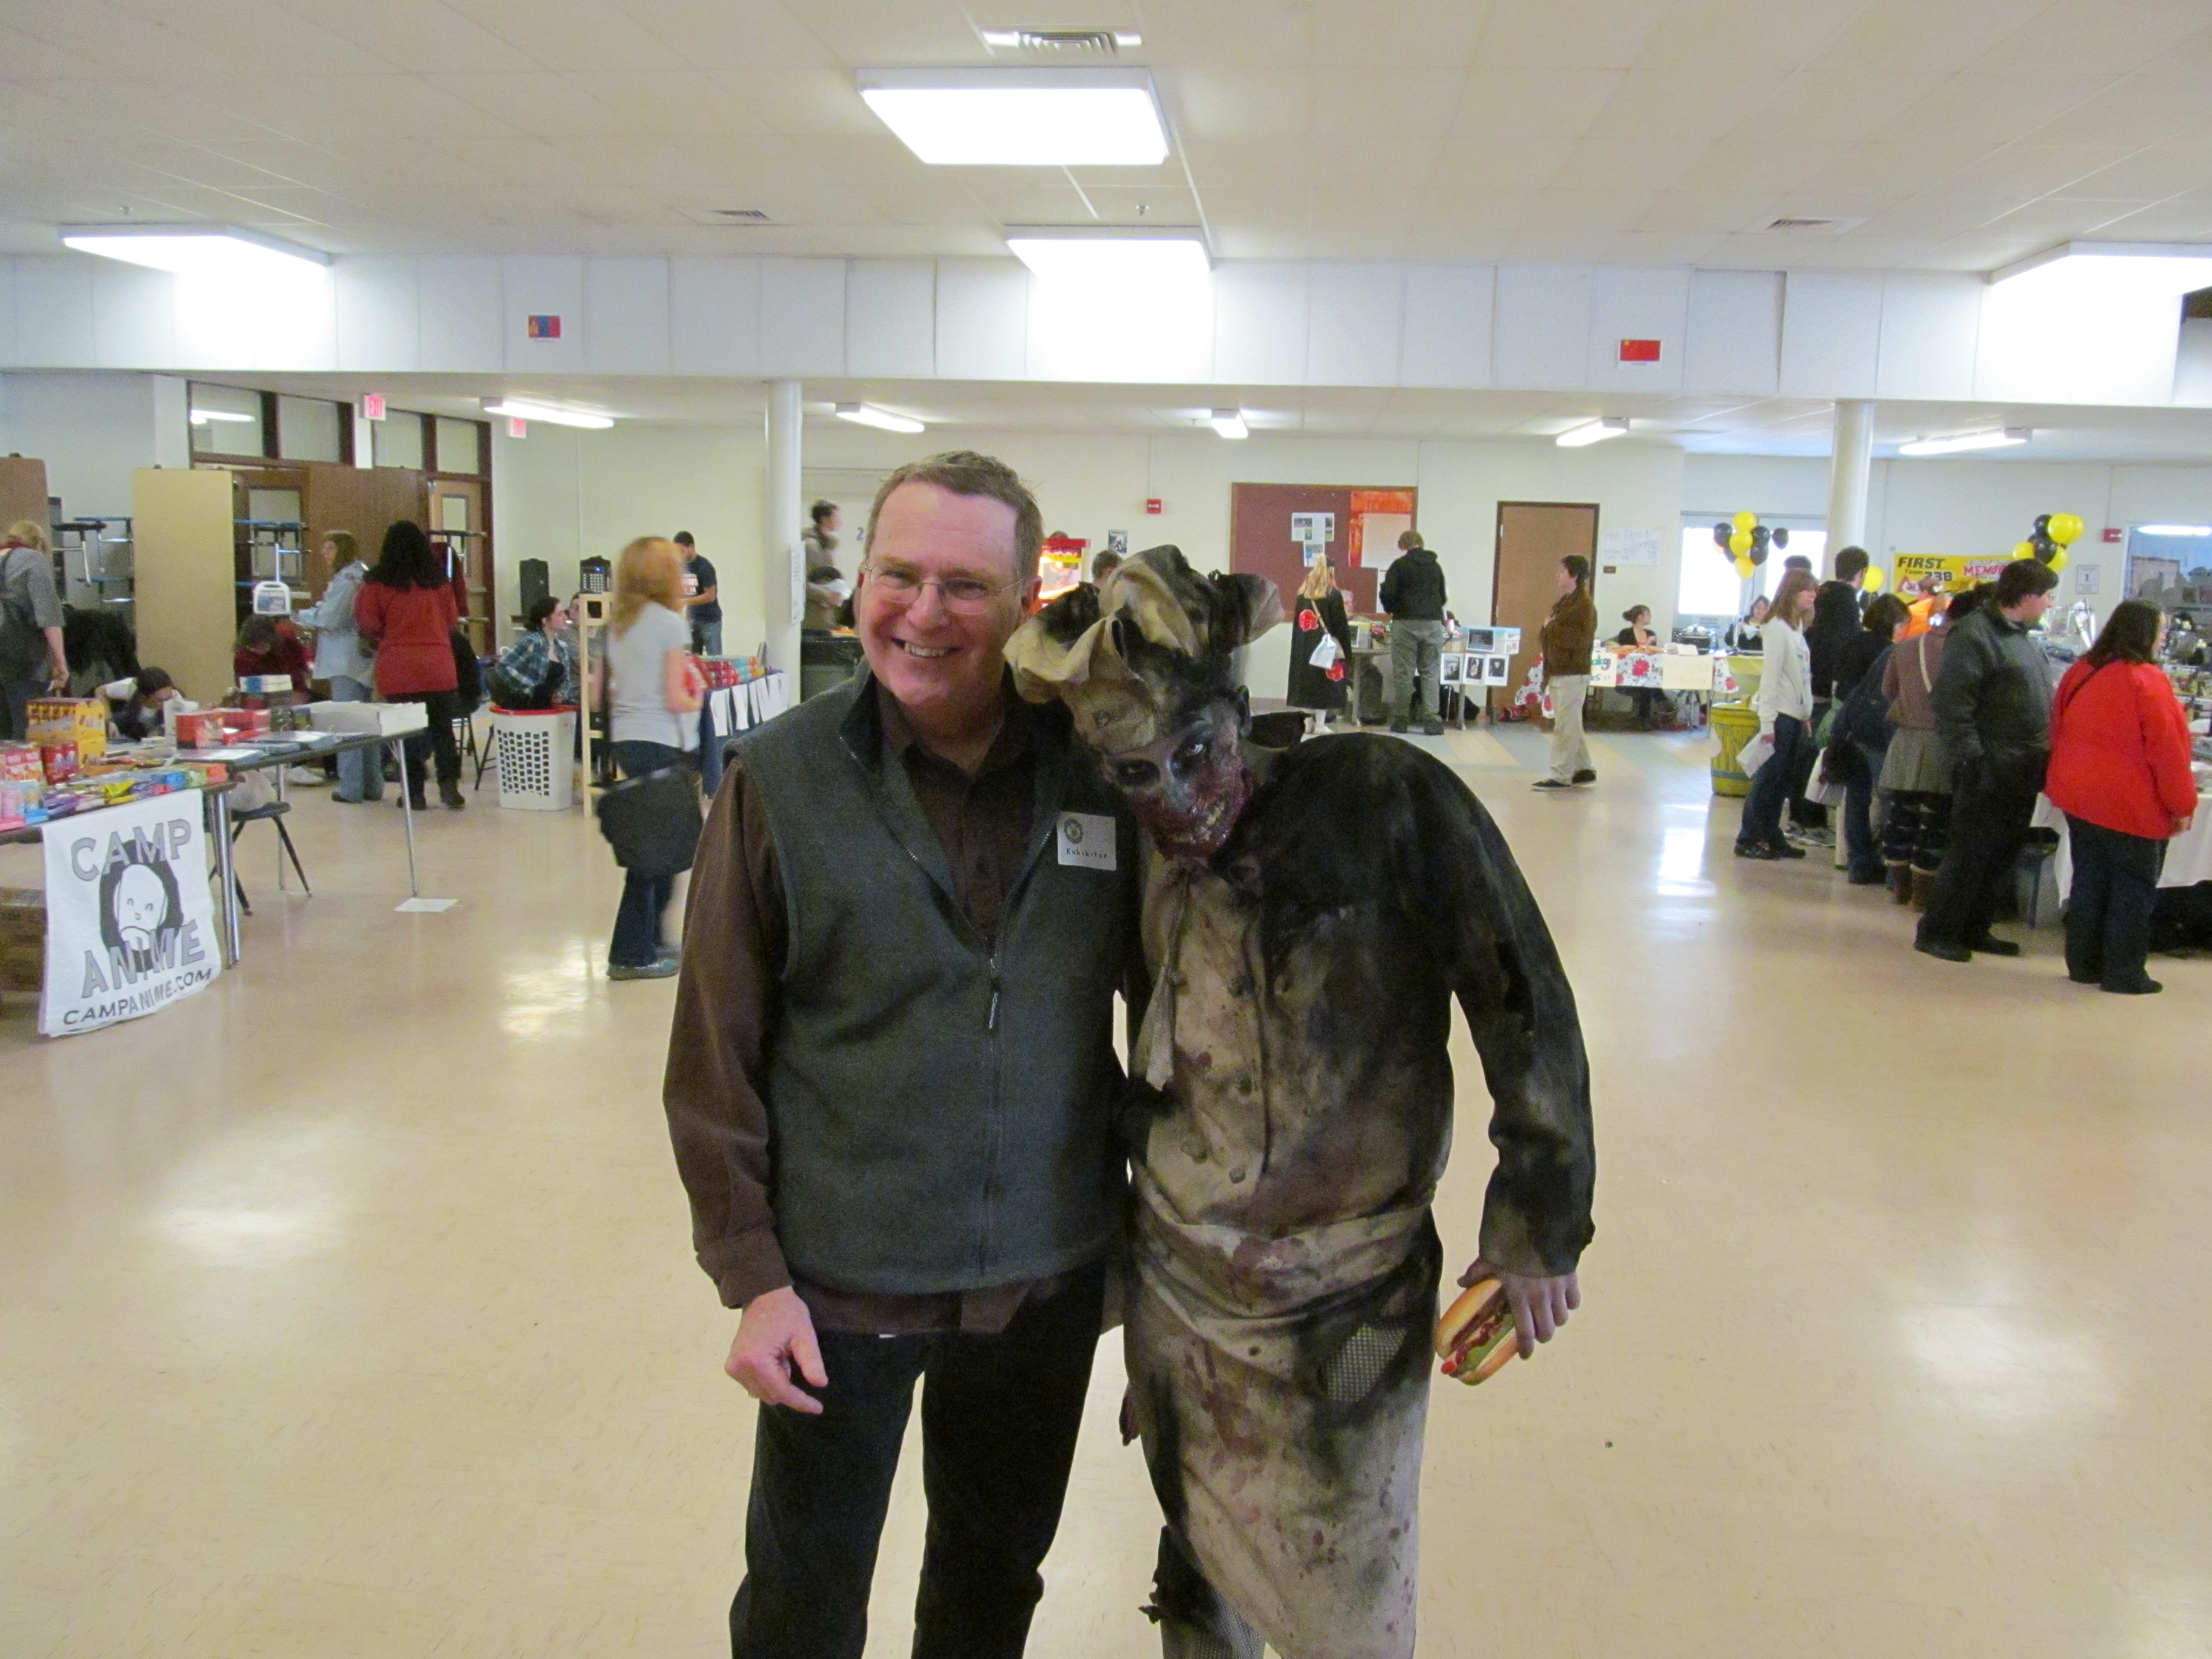 Author Bill Rockwell with a zombie. Photo by Jason Harris.